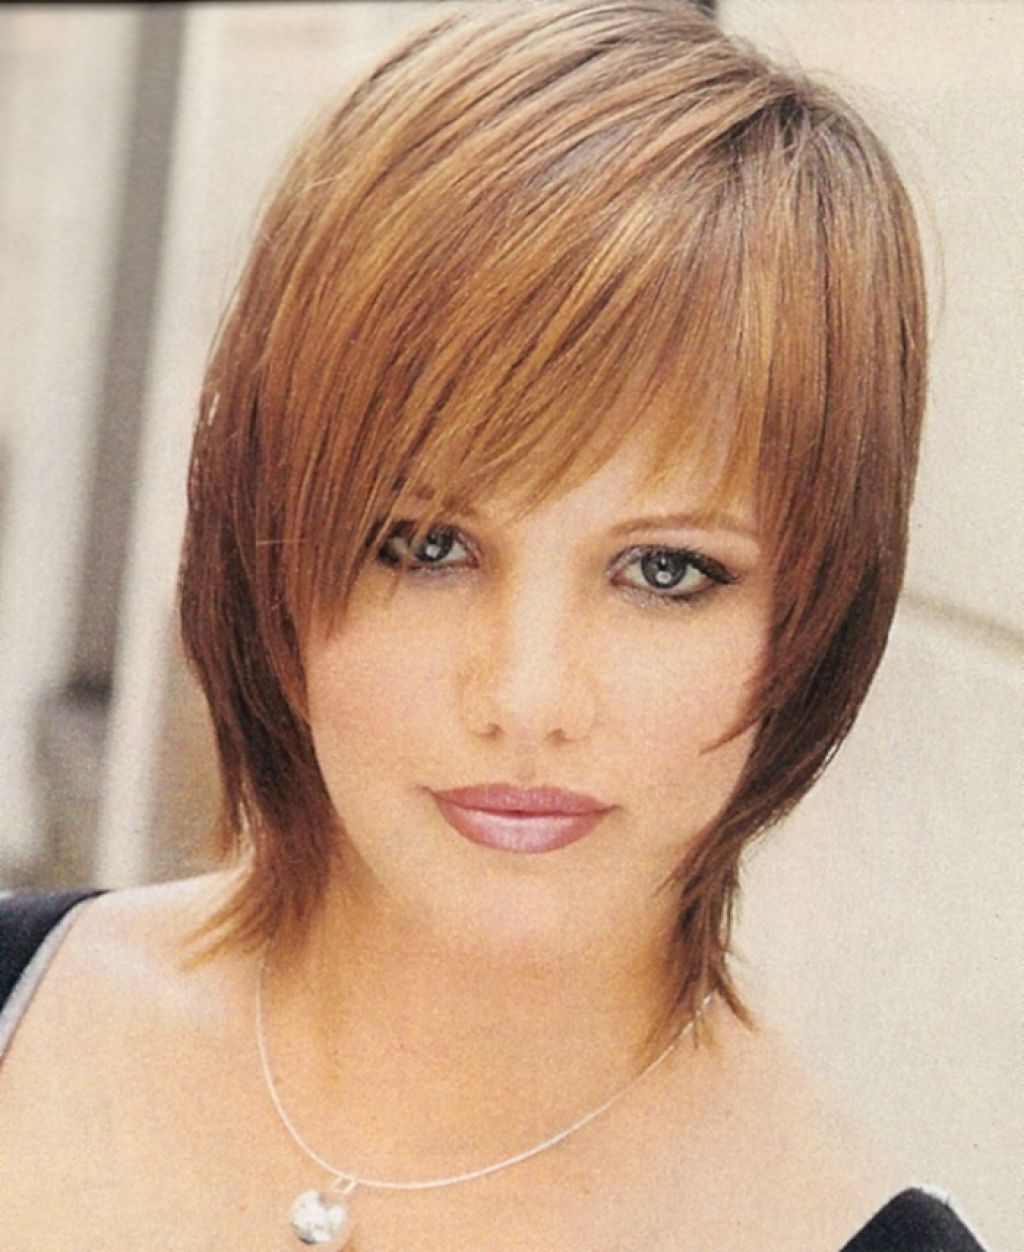 Short Hairstyles For Thin Hair Treatment – Hairstyle Diary In Cute Short Hairstyles For Thin Hair (View 15 of 25)